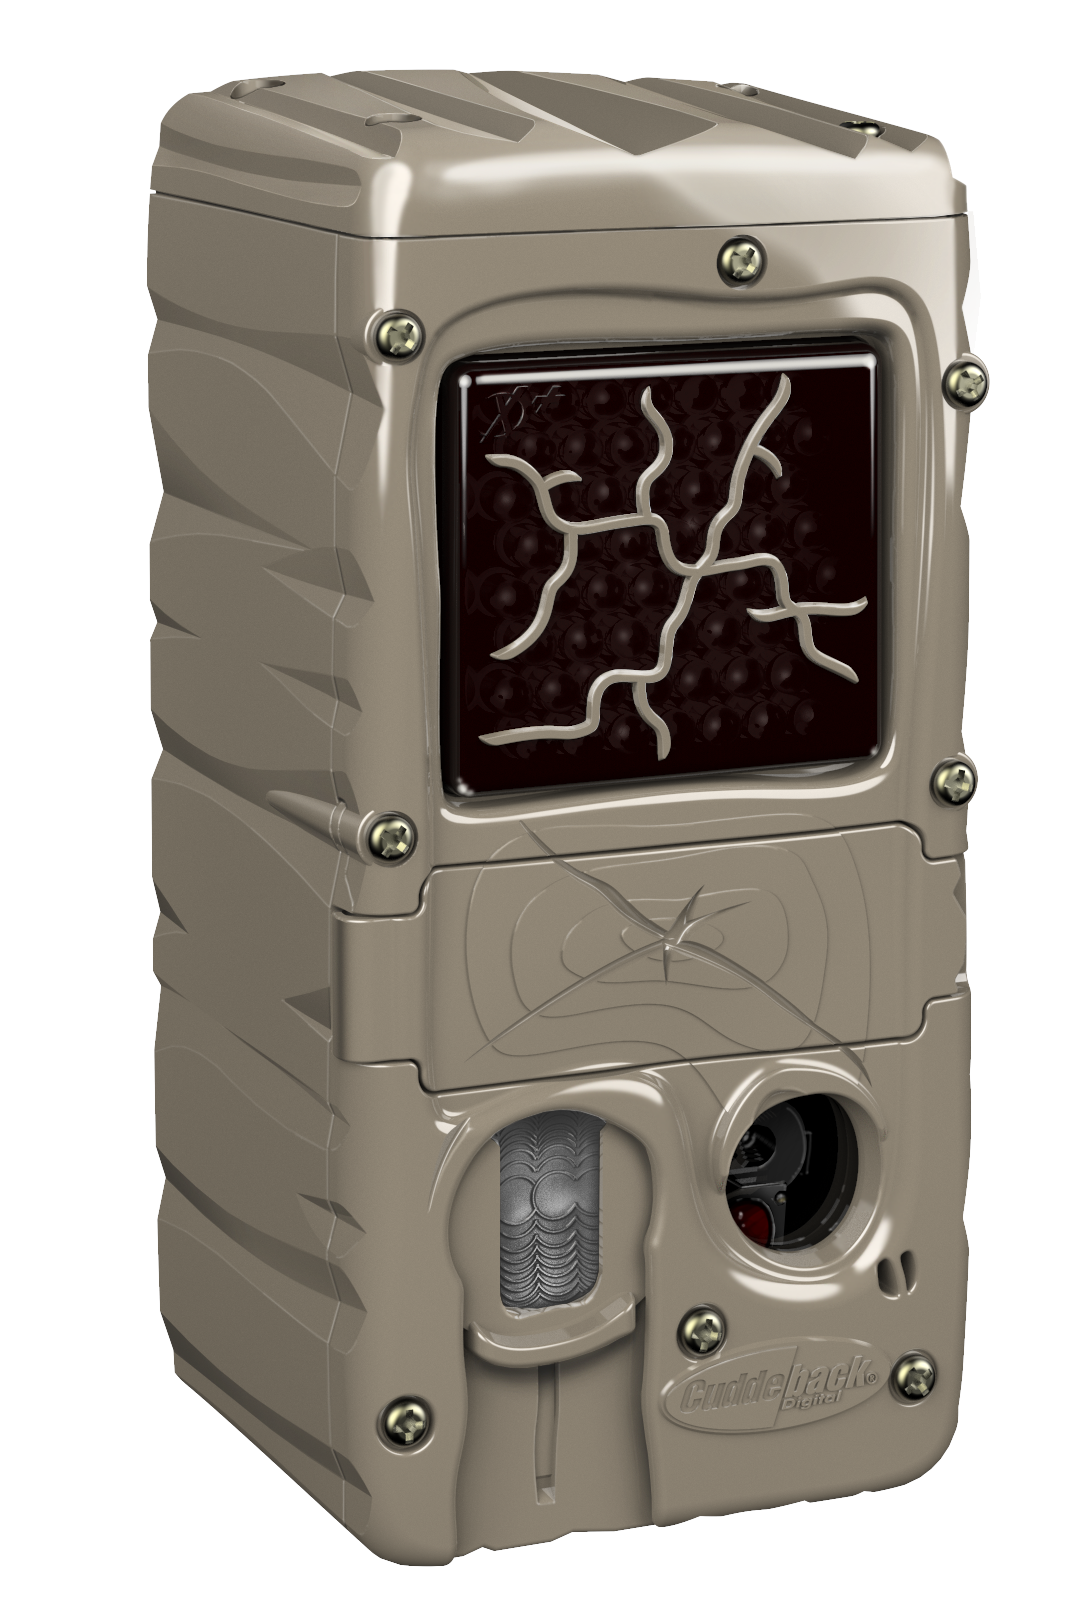 Cuddeback Dual Flash 20 MP Game Camera - Brown